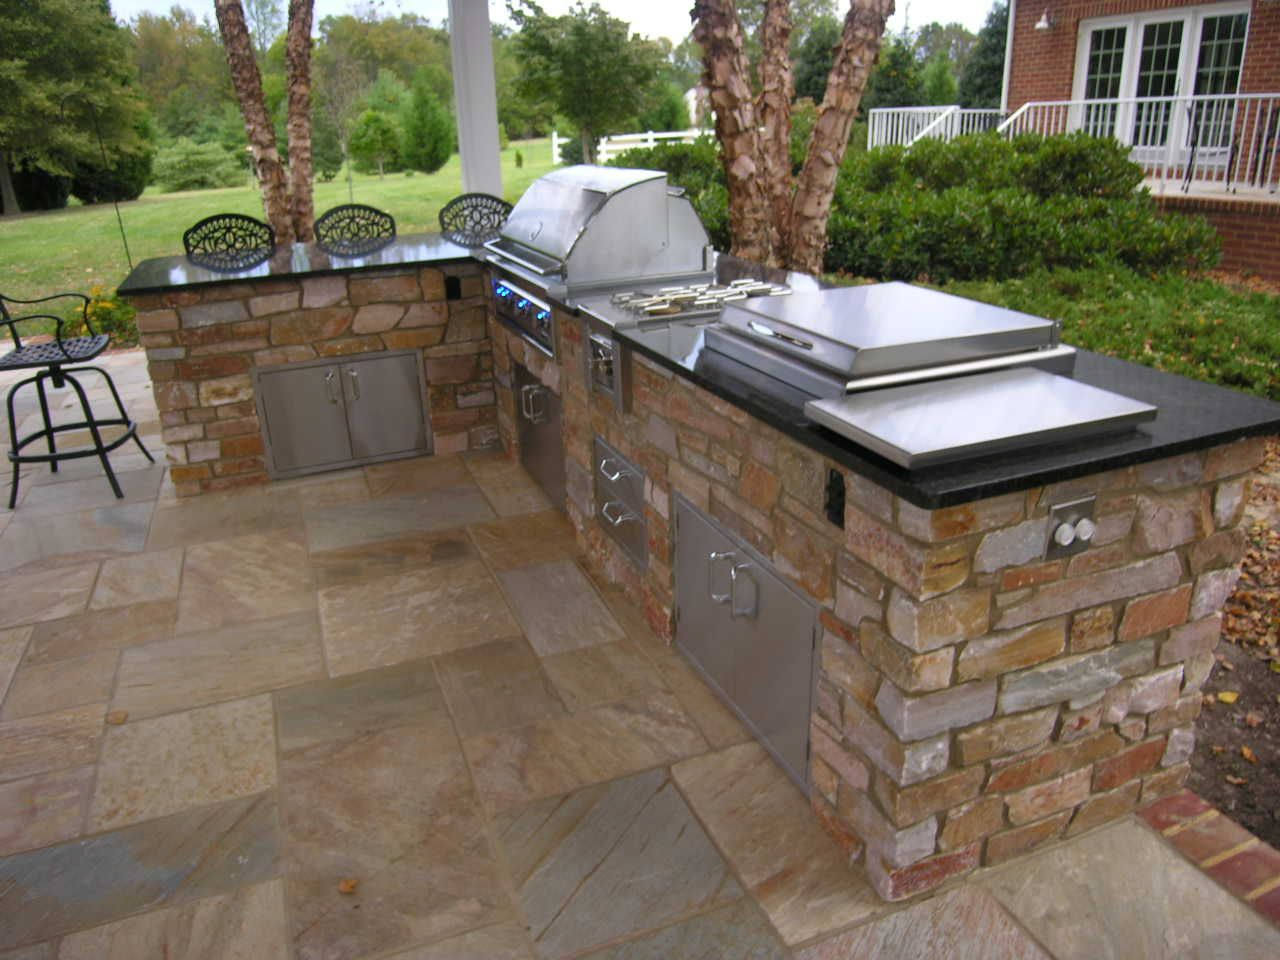 Outdoor Bar And Grill Designs | Outdoor Kitchens U2013 This Ainu0027t My Dadu0027s  Backyard